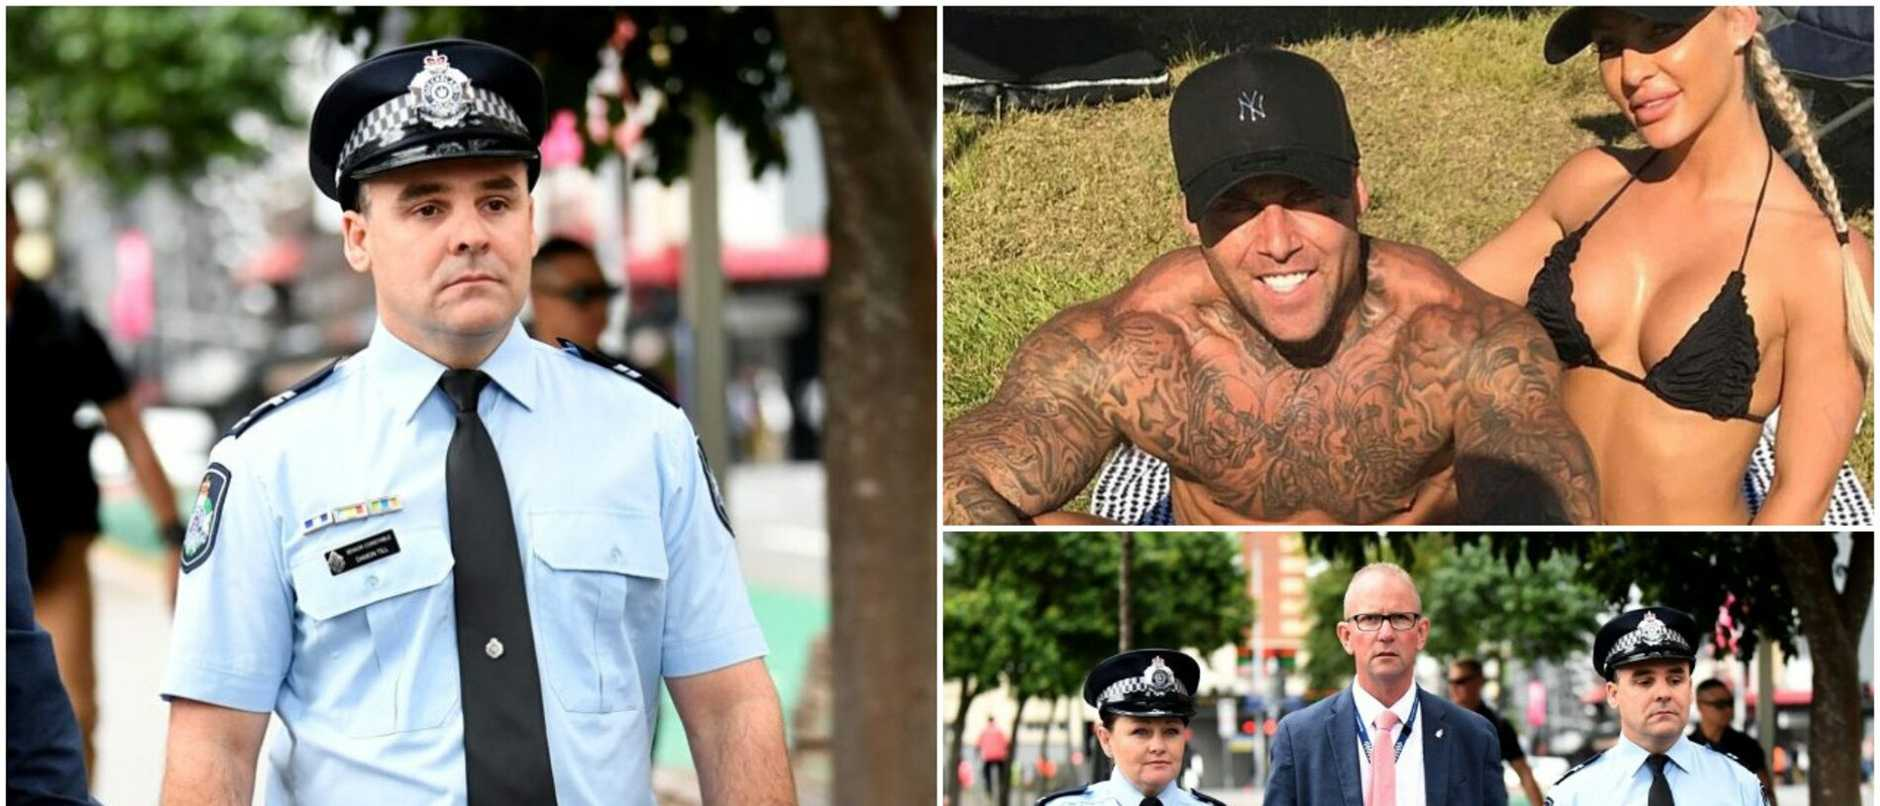 The police officer who fatally shot bikie associate Liam Scorsese has told an inquest why he failed to turn on his body camera during the harrowing incident.